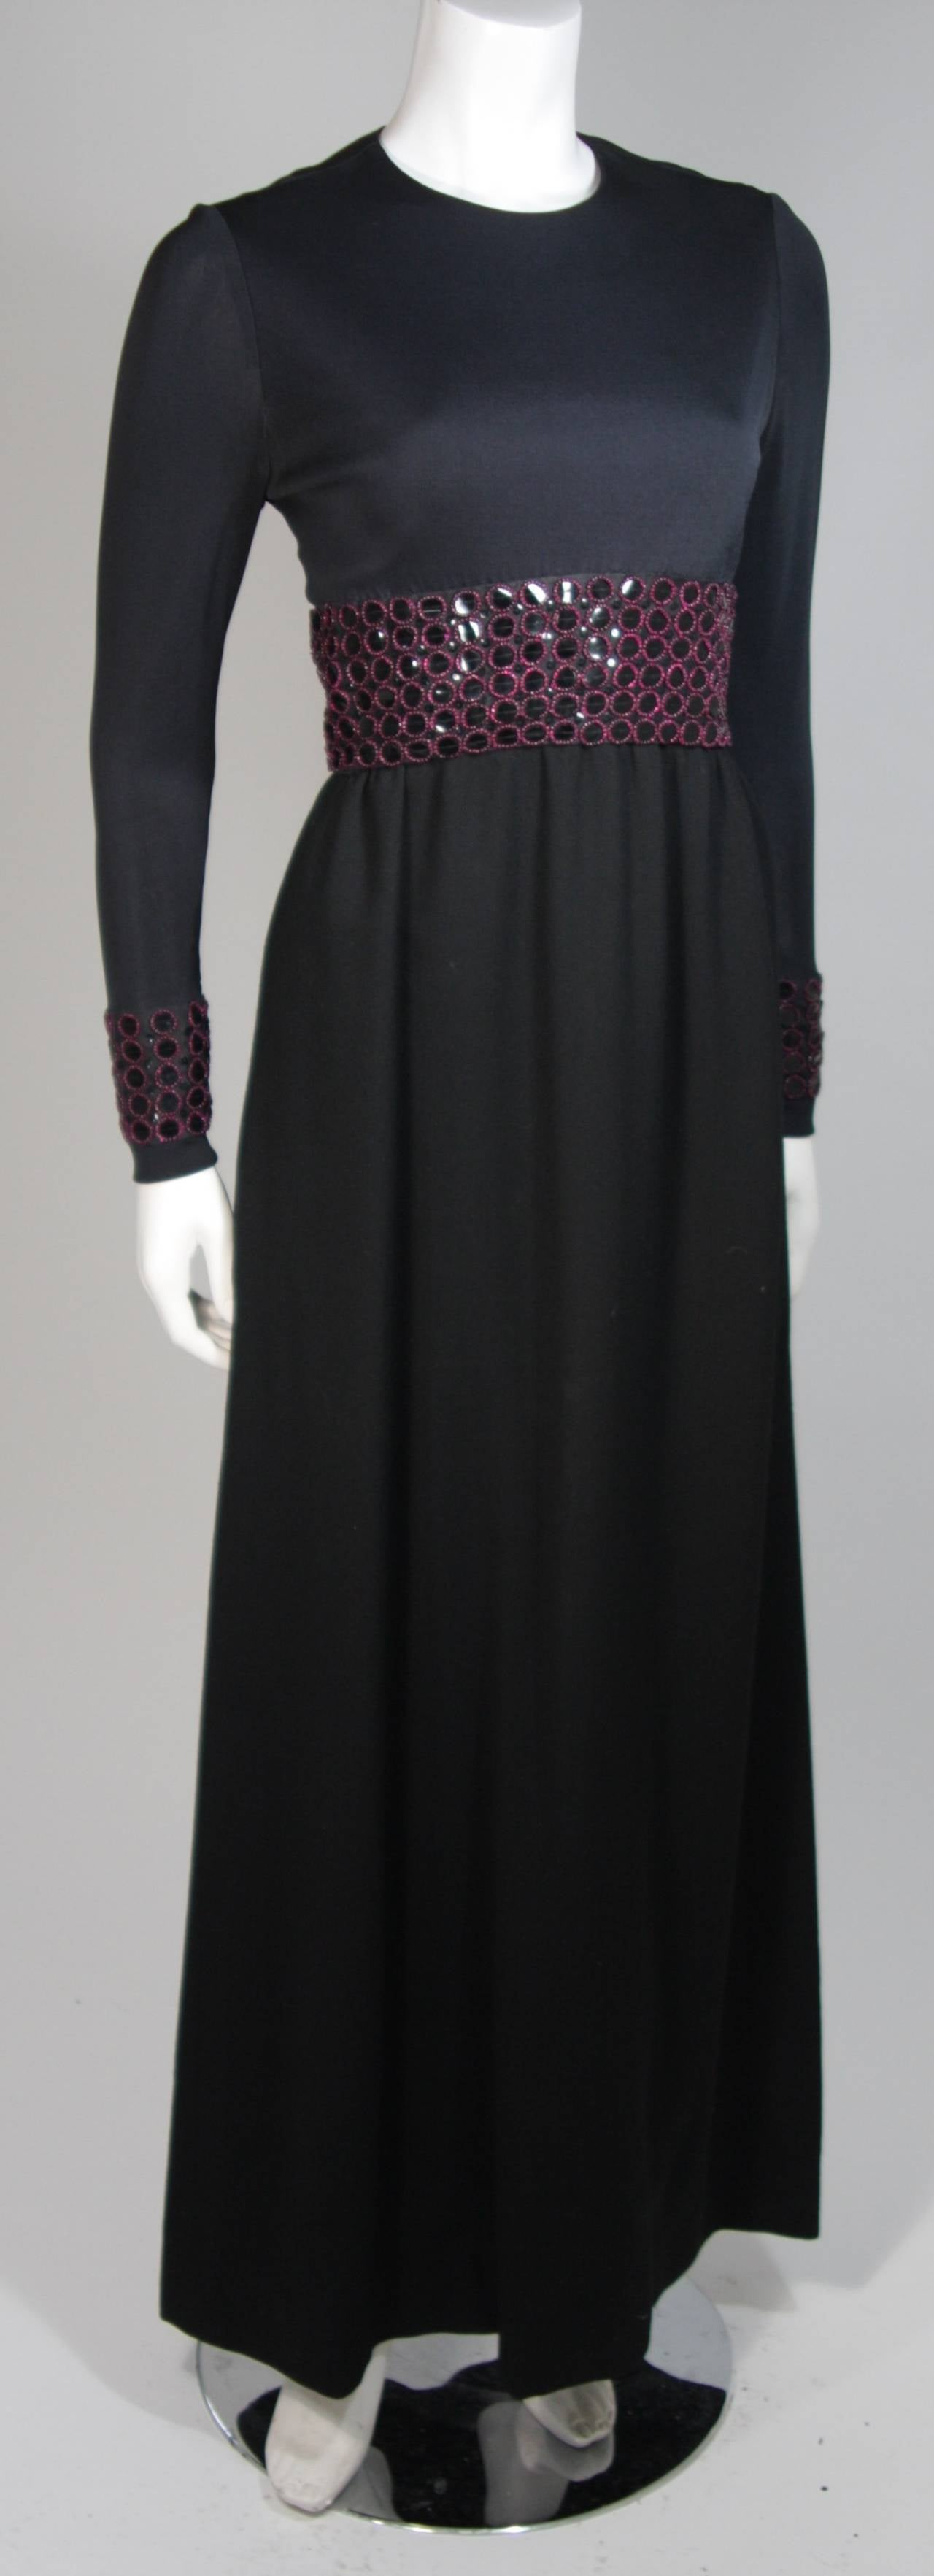 Chester Weinberg Black Long Sleeve Gown With Beaded Waist Size S M 3